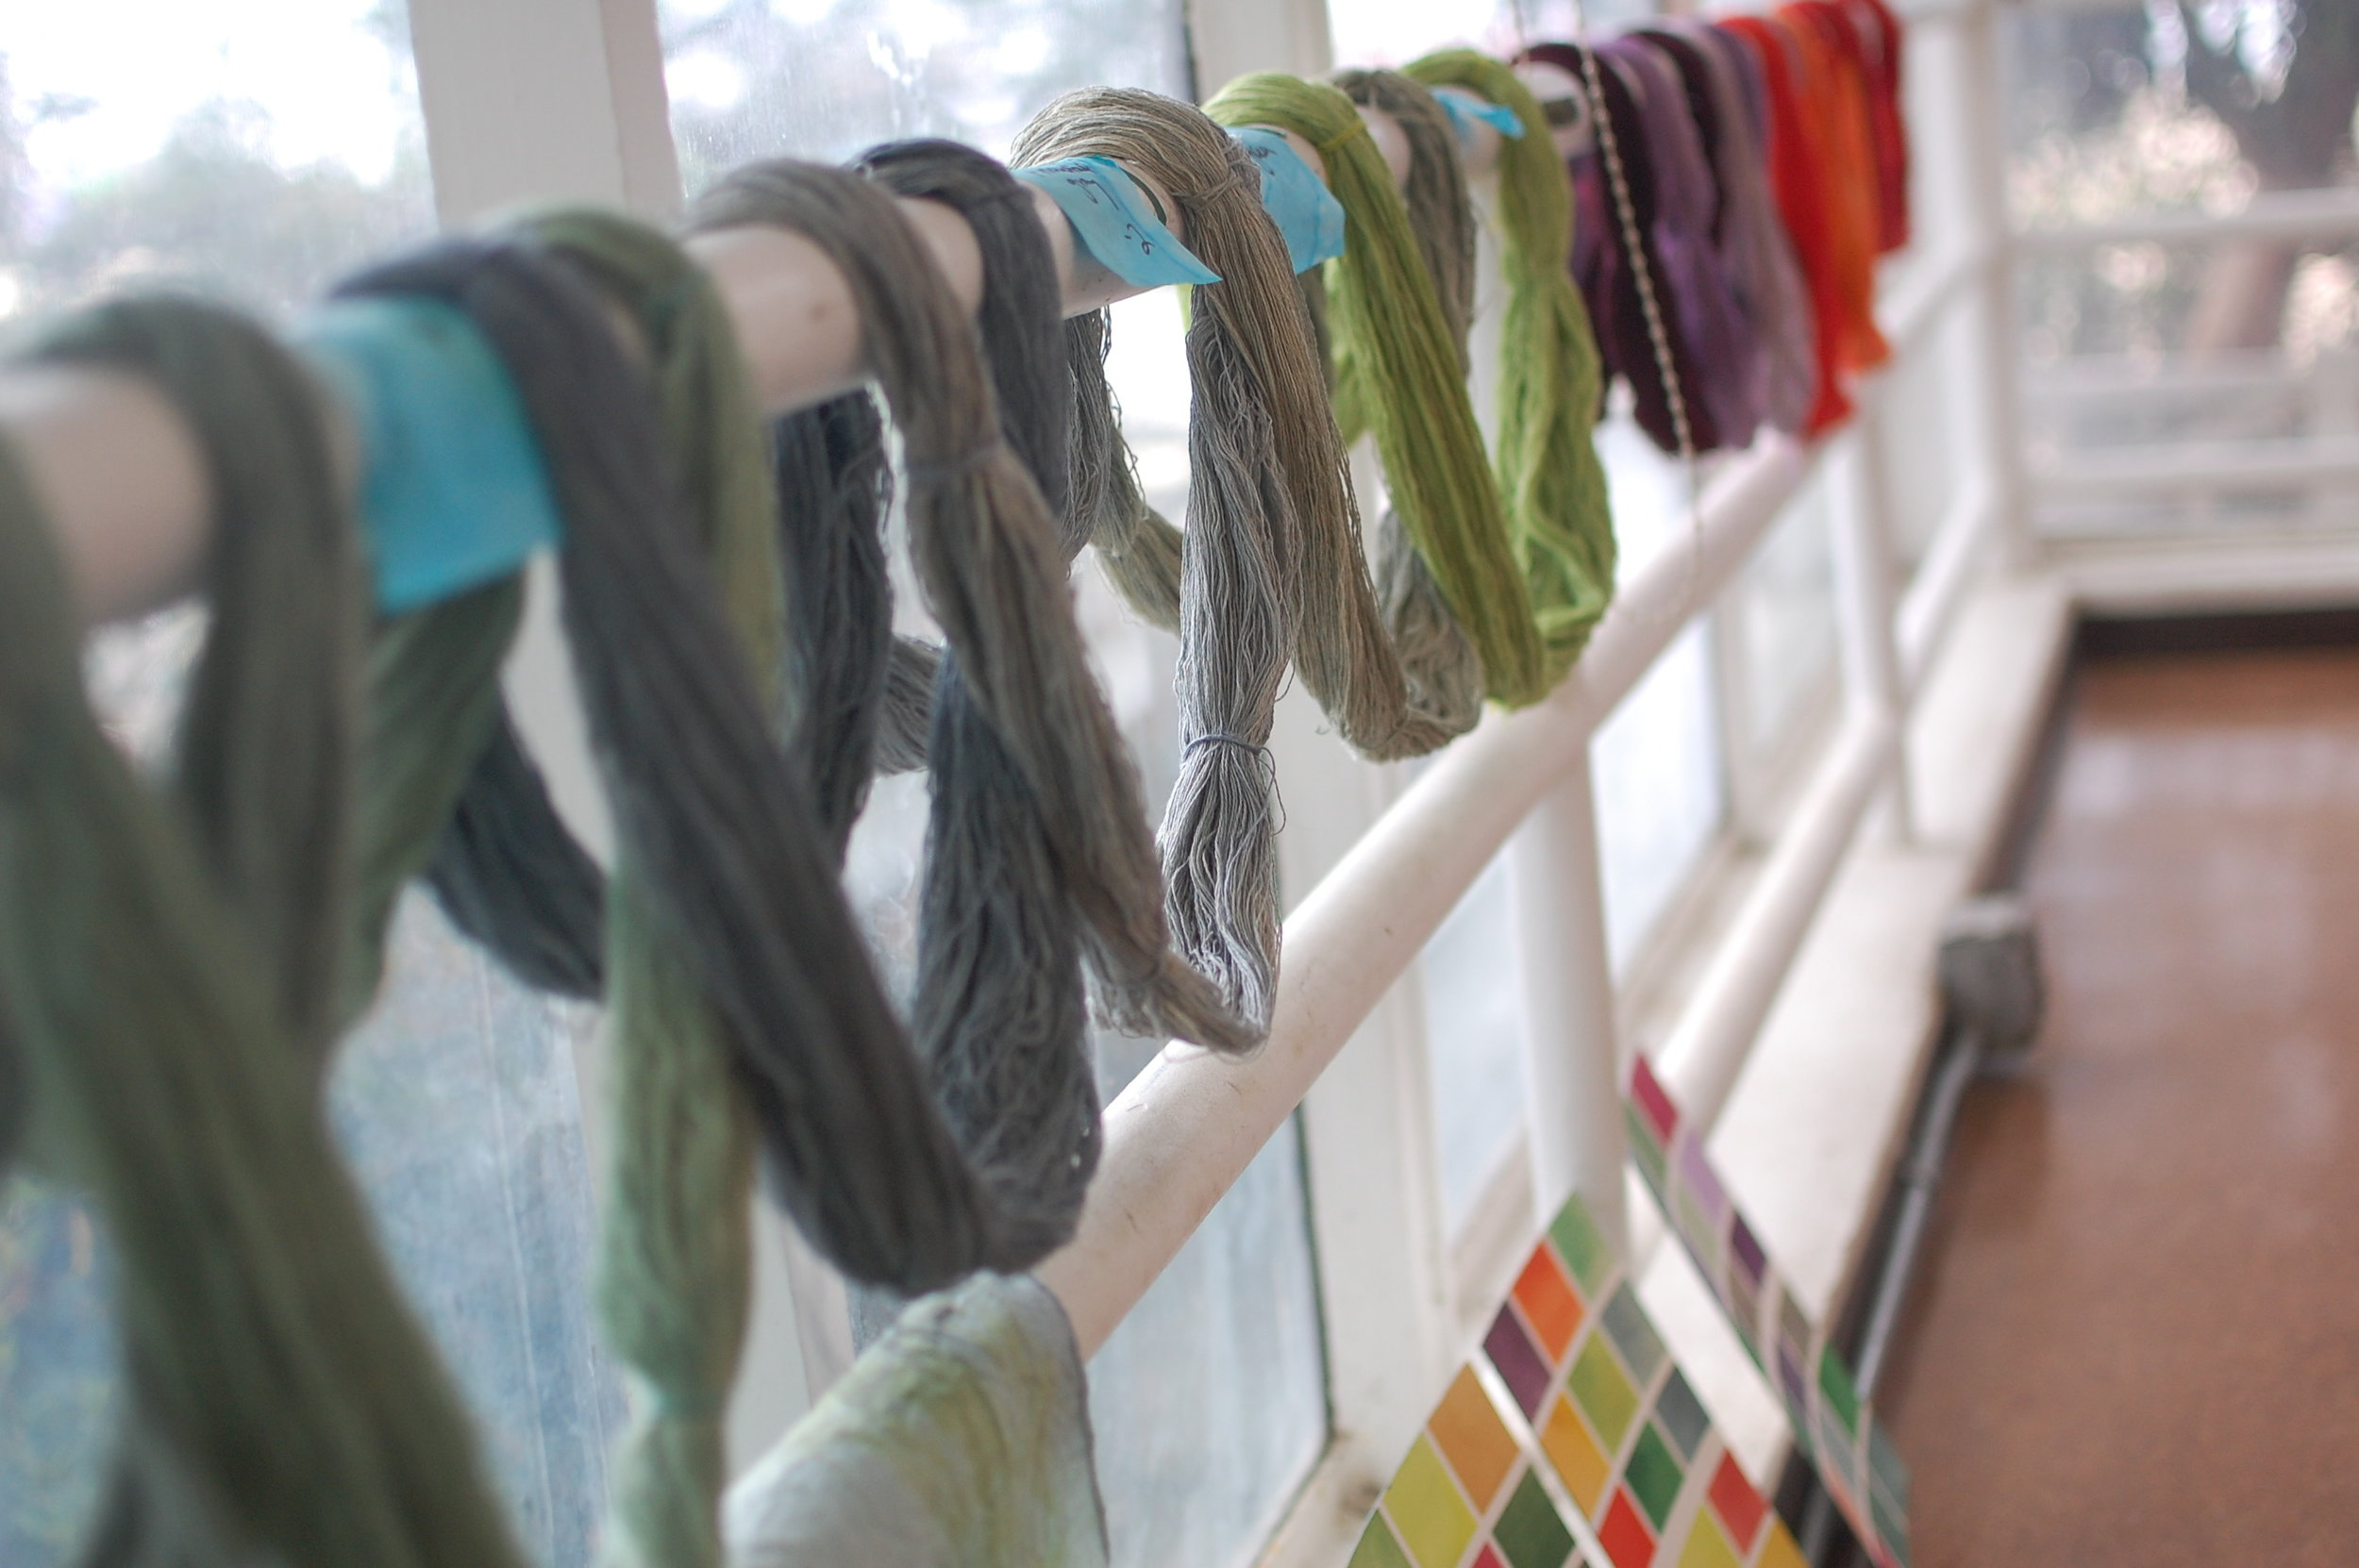 some of the dyed skeins of yarn - shown with watercolor studies